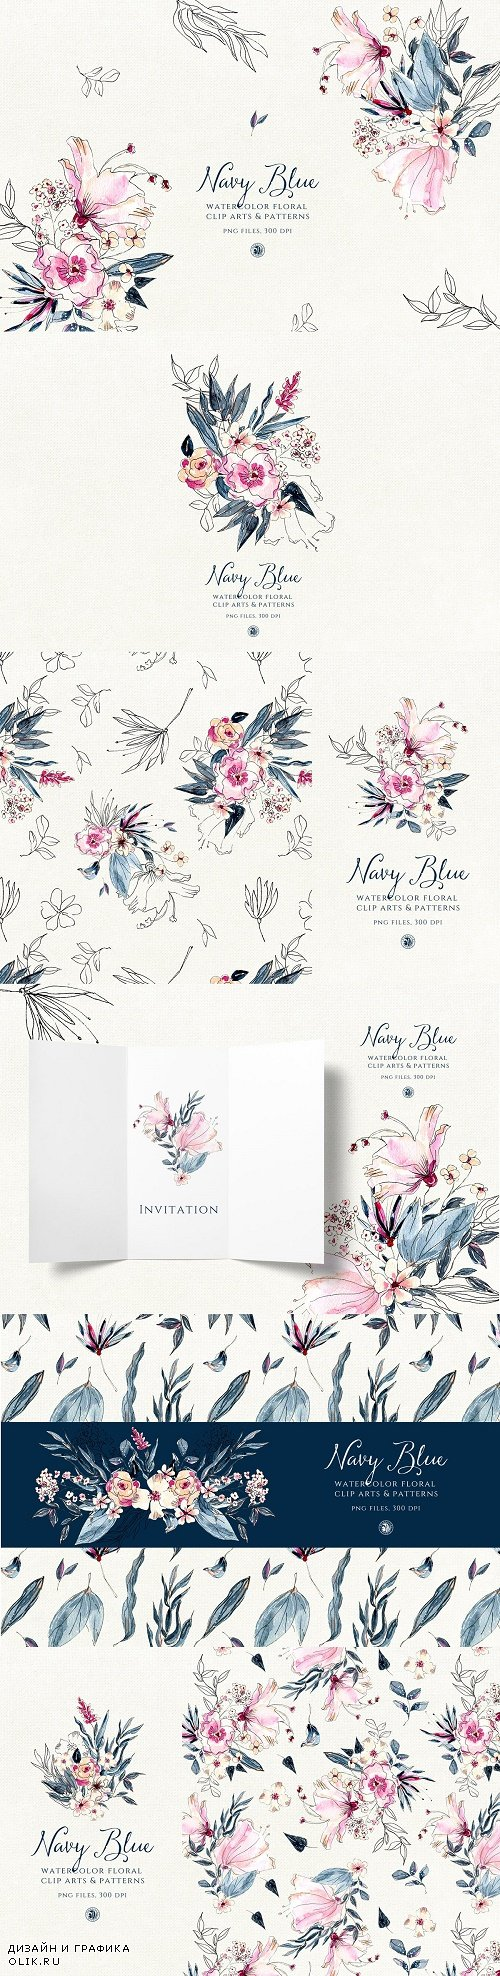 Navy Blue Watercolor Flowers - 3816789